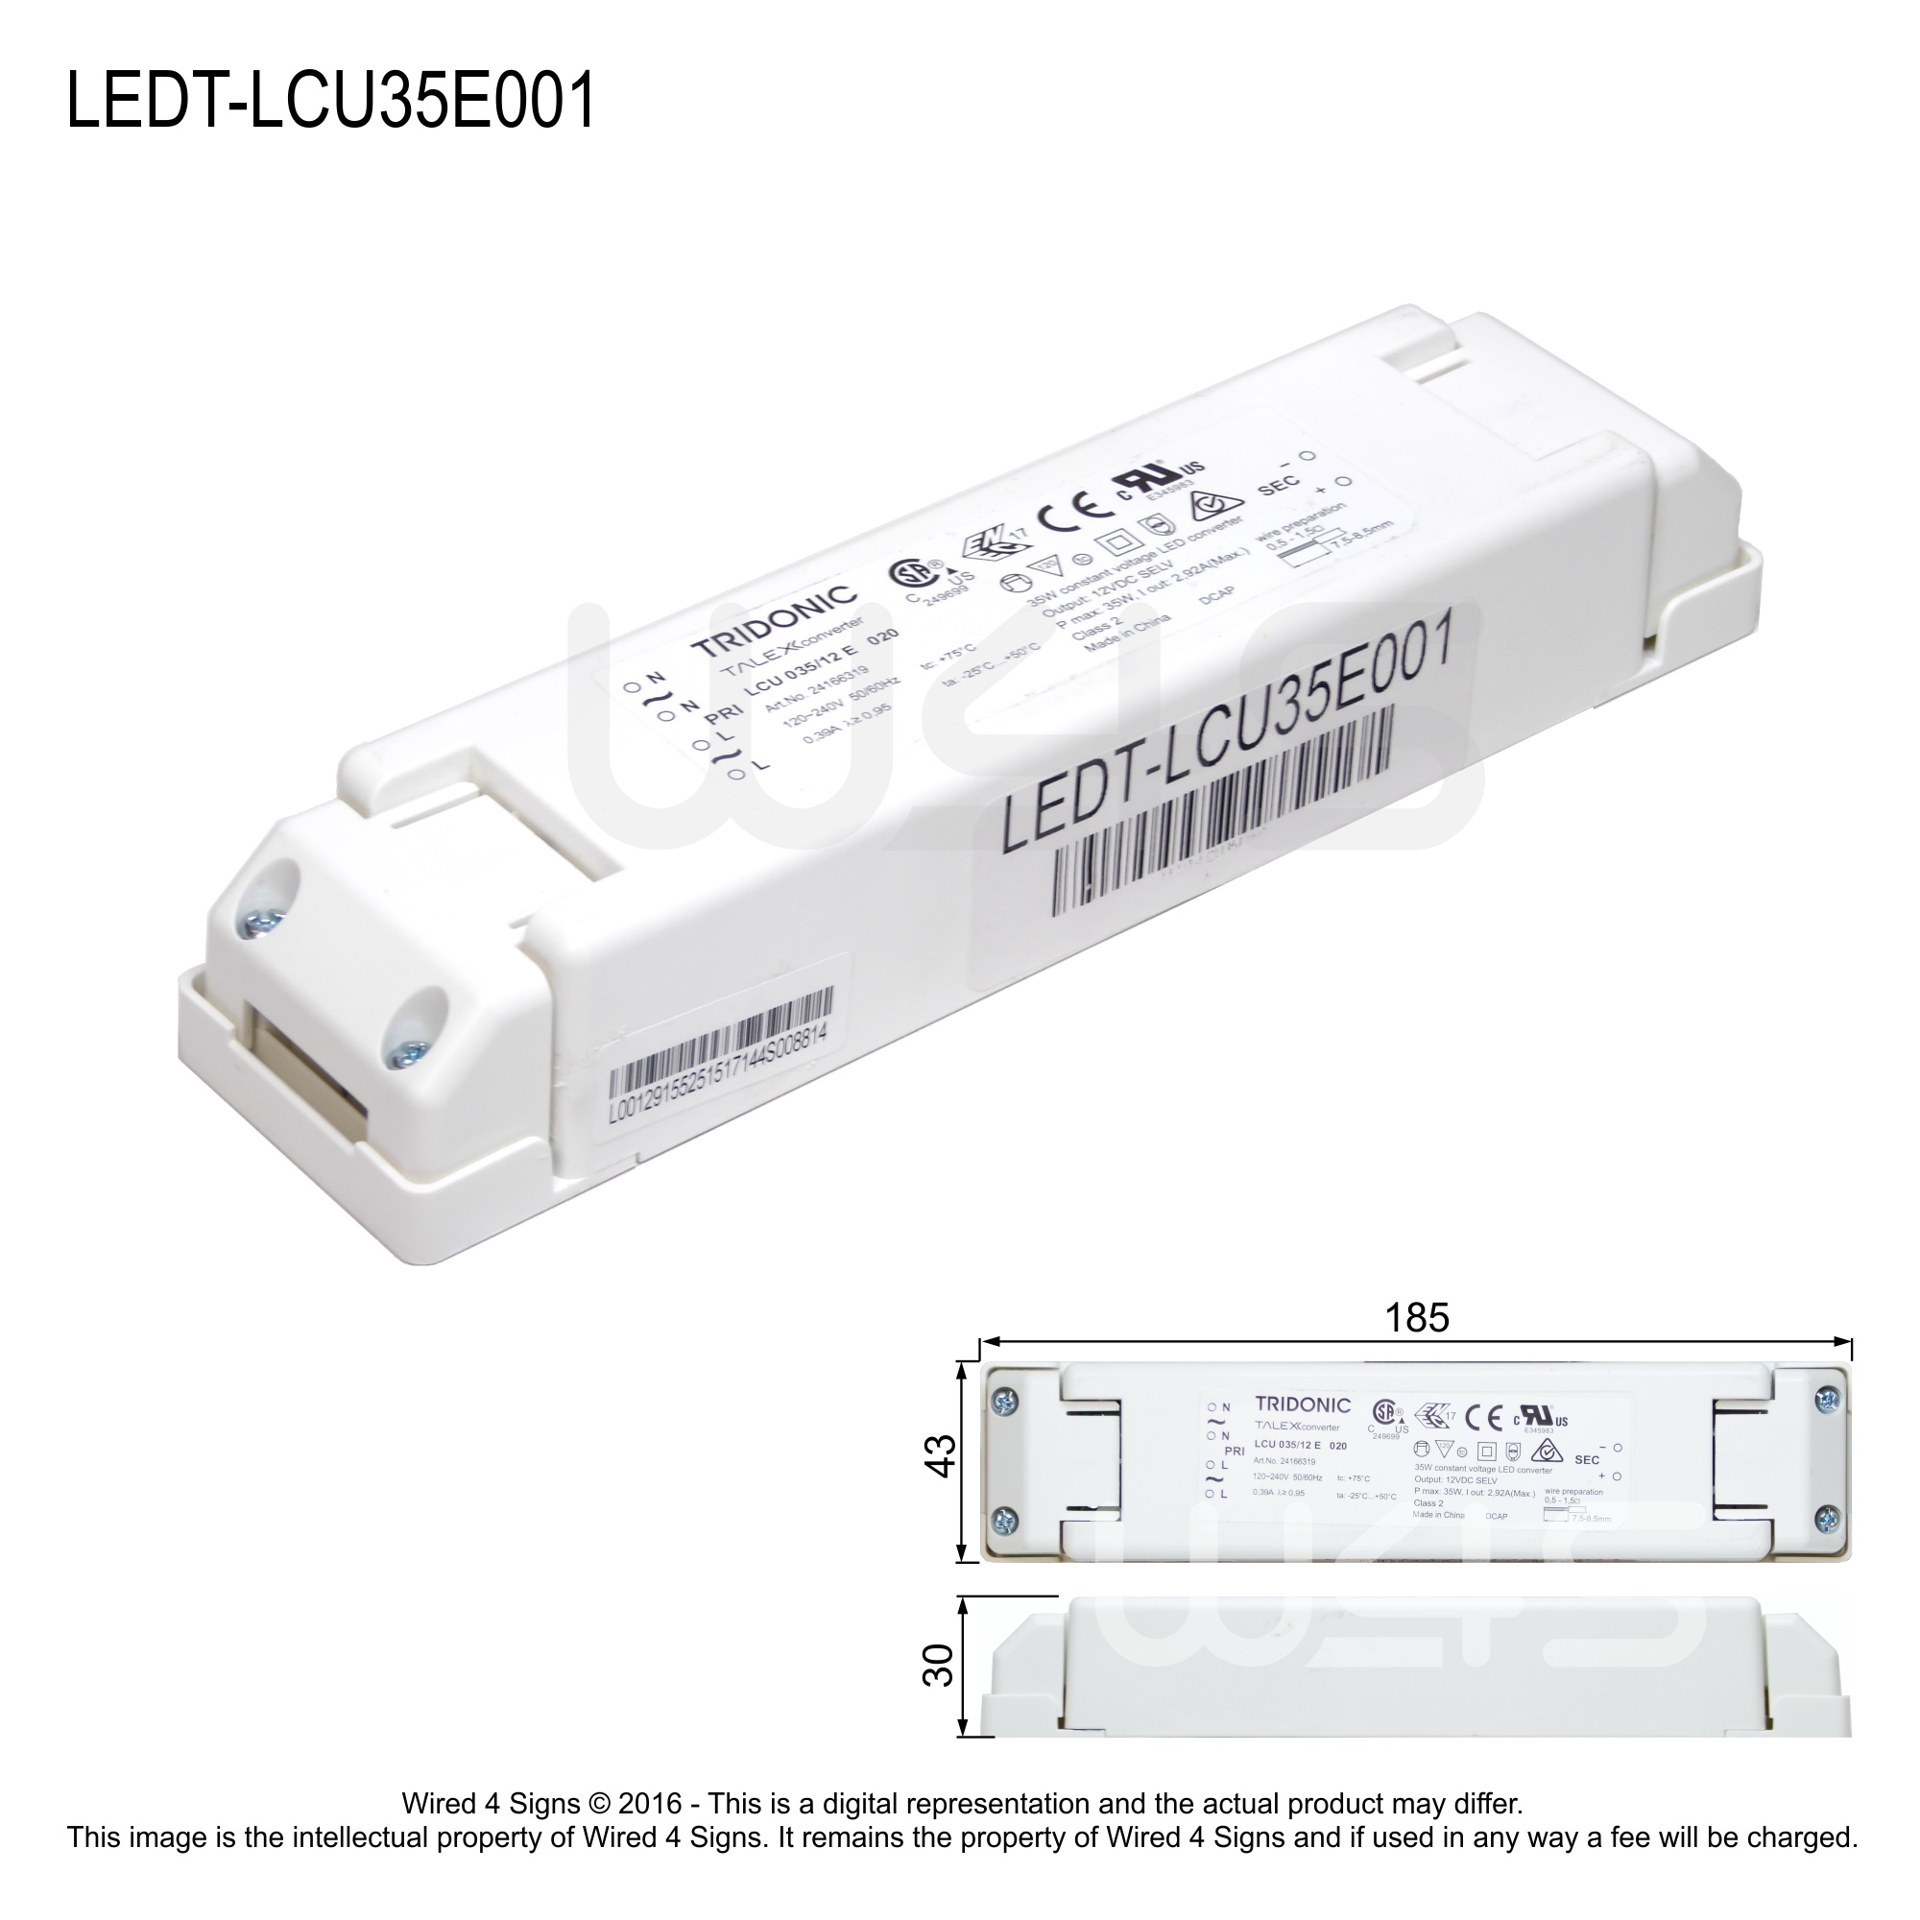 Electrical Wiring Standards South Africa Power Supplies Perspex Previously Wired4signs Flexible Led Strip Lights 12v Port Elizabeth